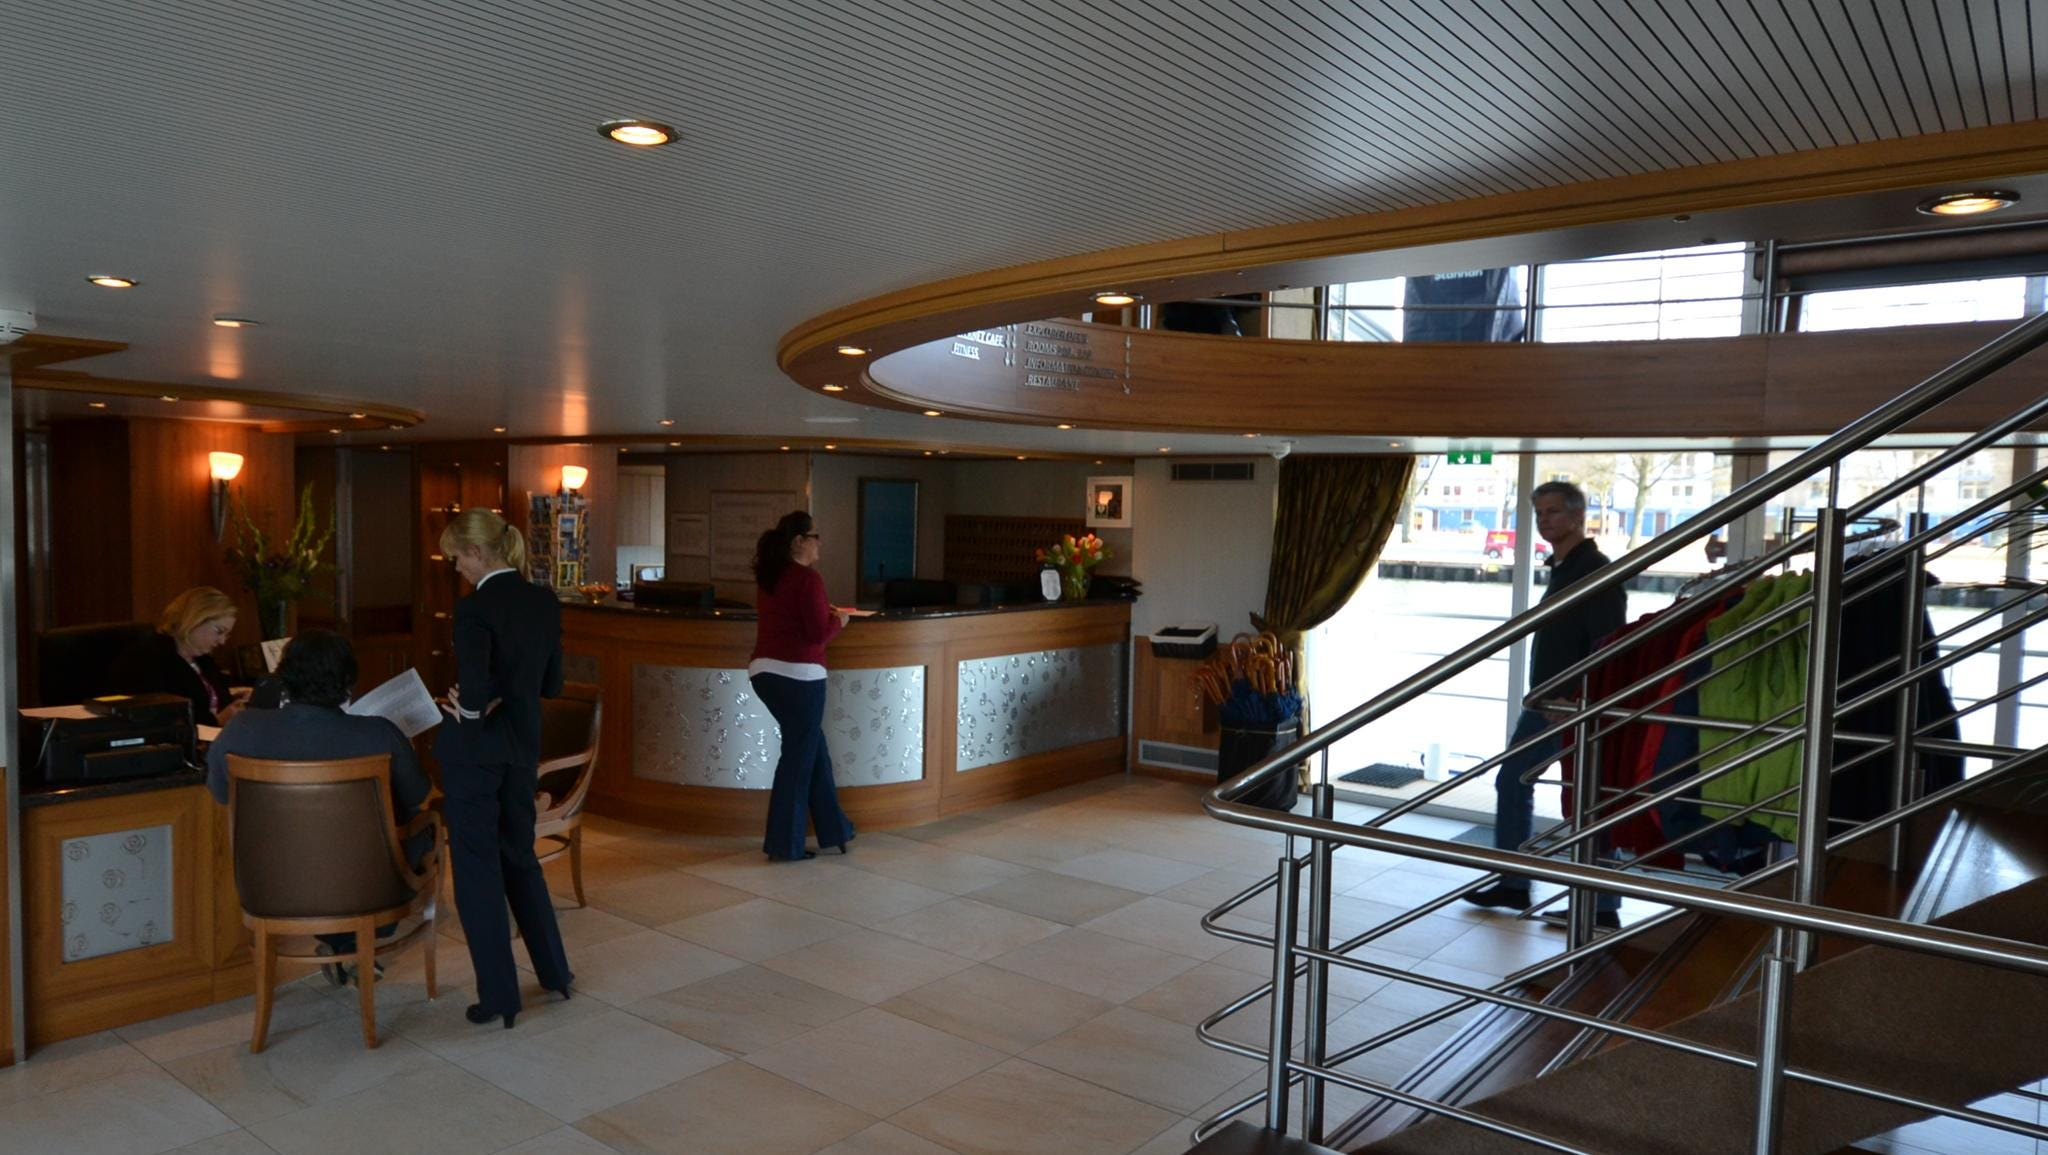 The ship's central lobby, where passengers will find the Hospitality Desk.